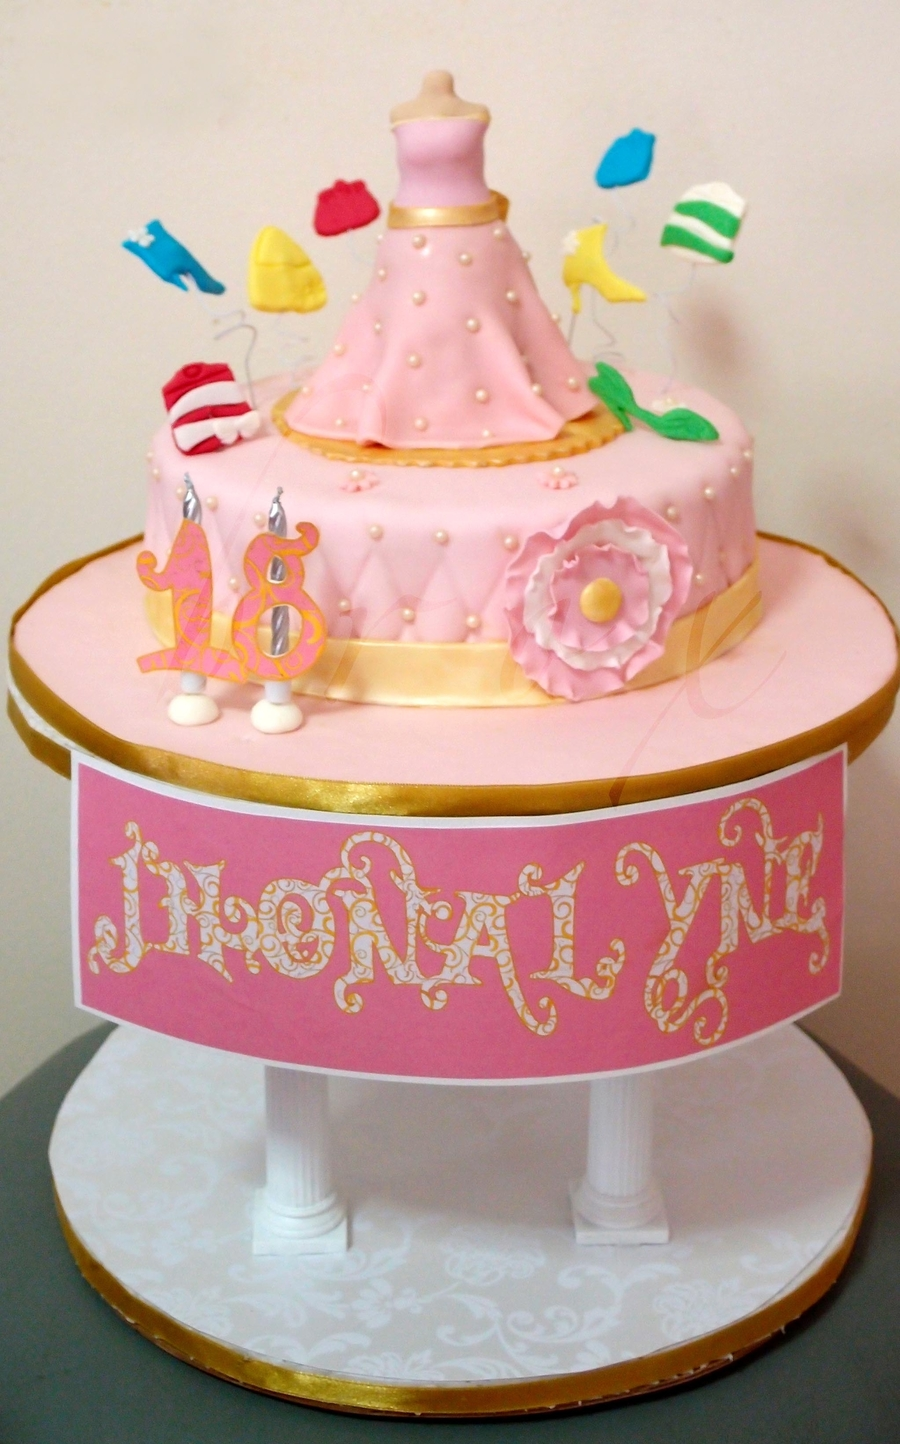 Fashionista's 18Th Birthday on Cake Central